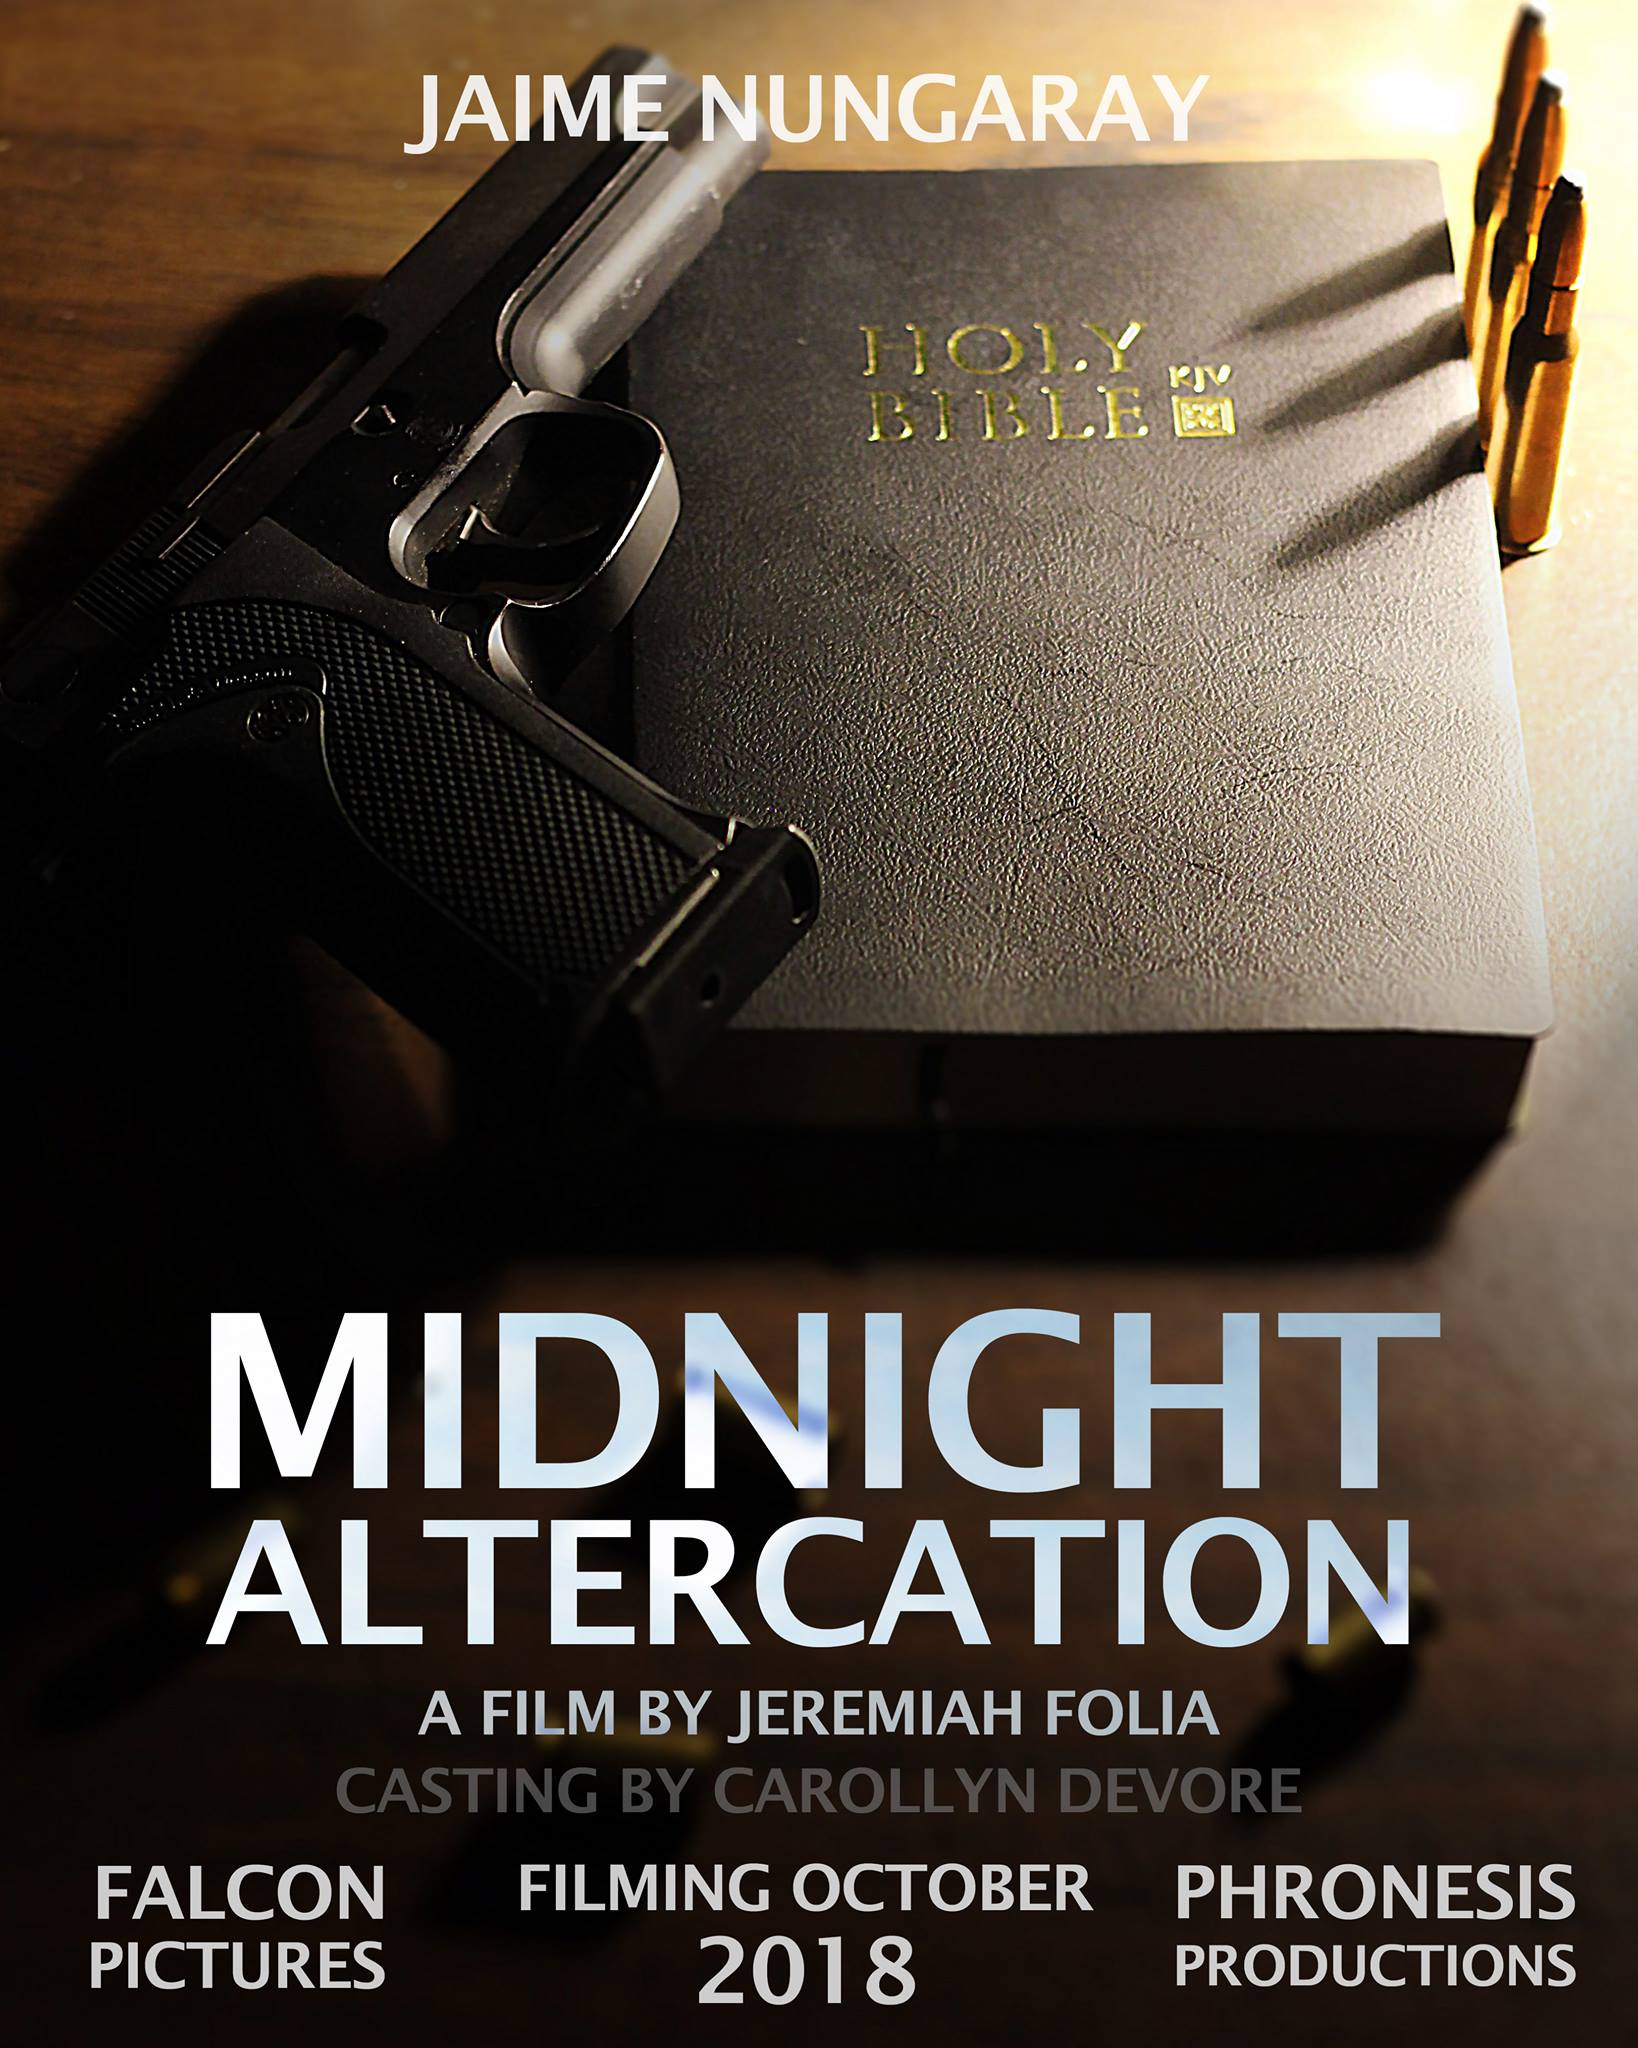 Midnight Altercation